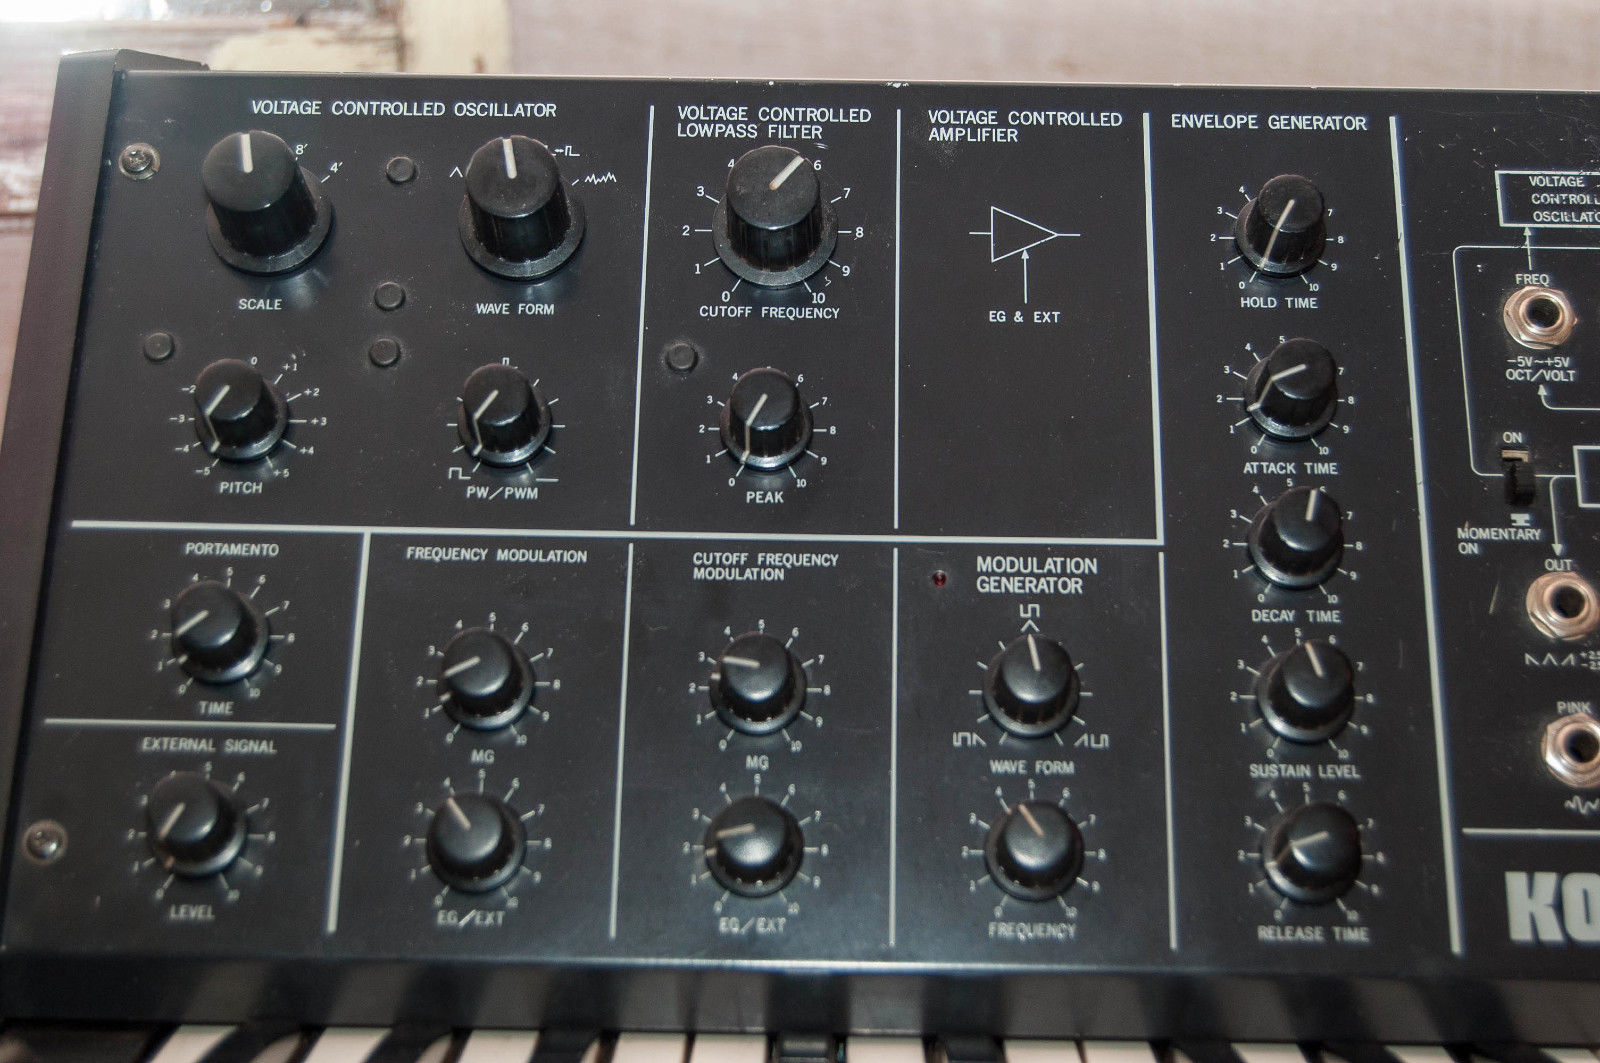 Matrixsynth Modded Korg Ms 10 Vintage Analog Mono Synthesizer Sn 134938 To Stereo The Switch Box Has Momentary And On Off Capabilities Synth Been Scaled Calibrated Recently All Functions Work 100